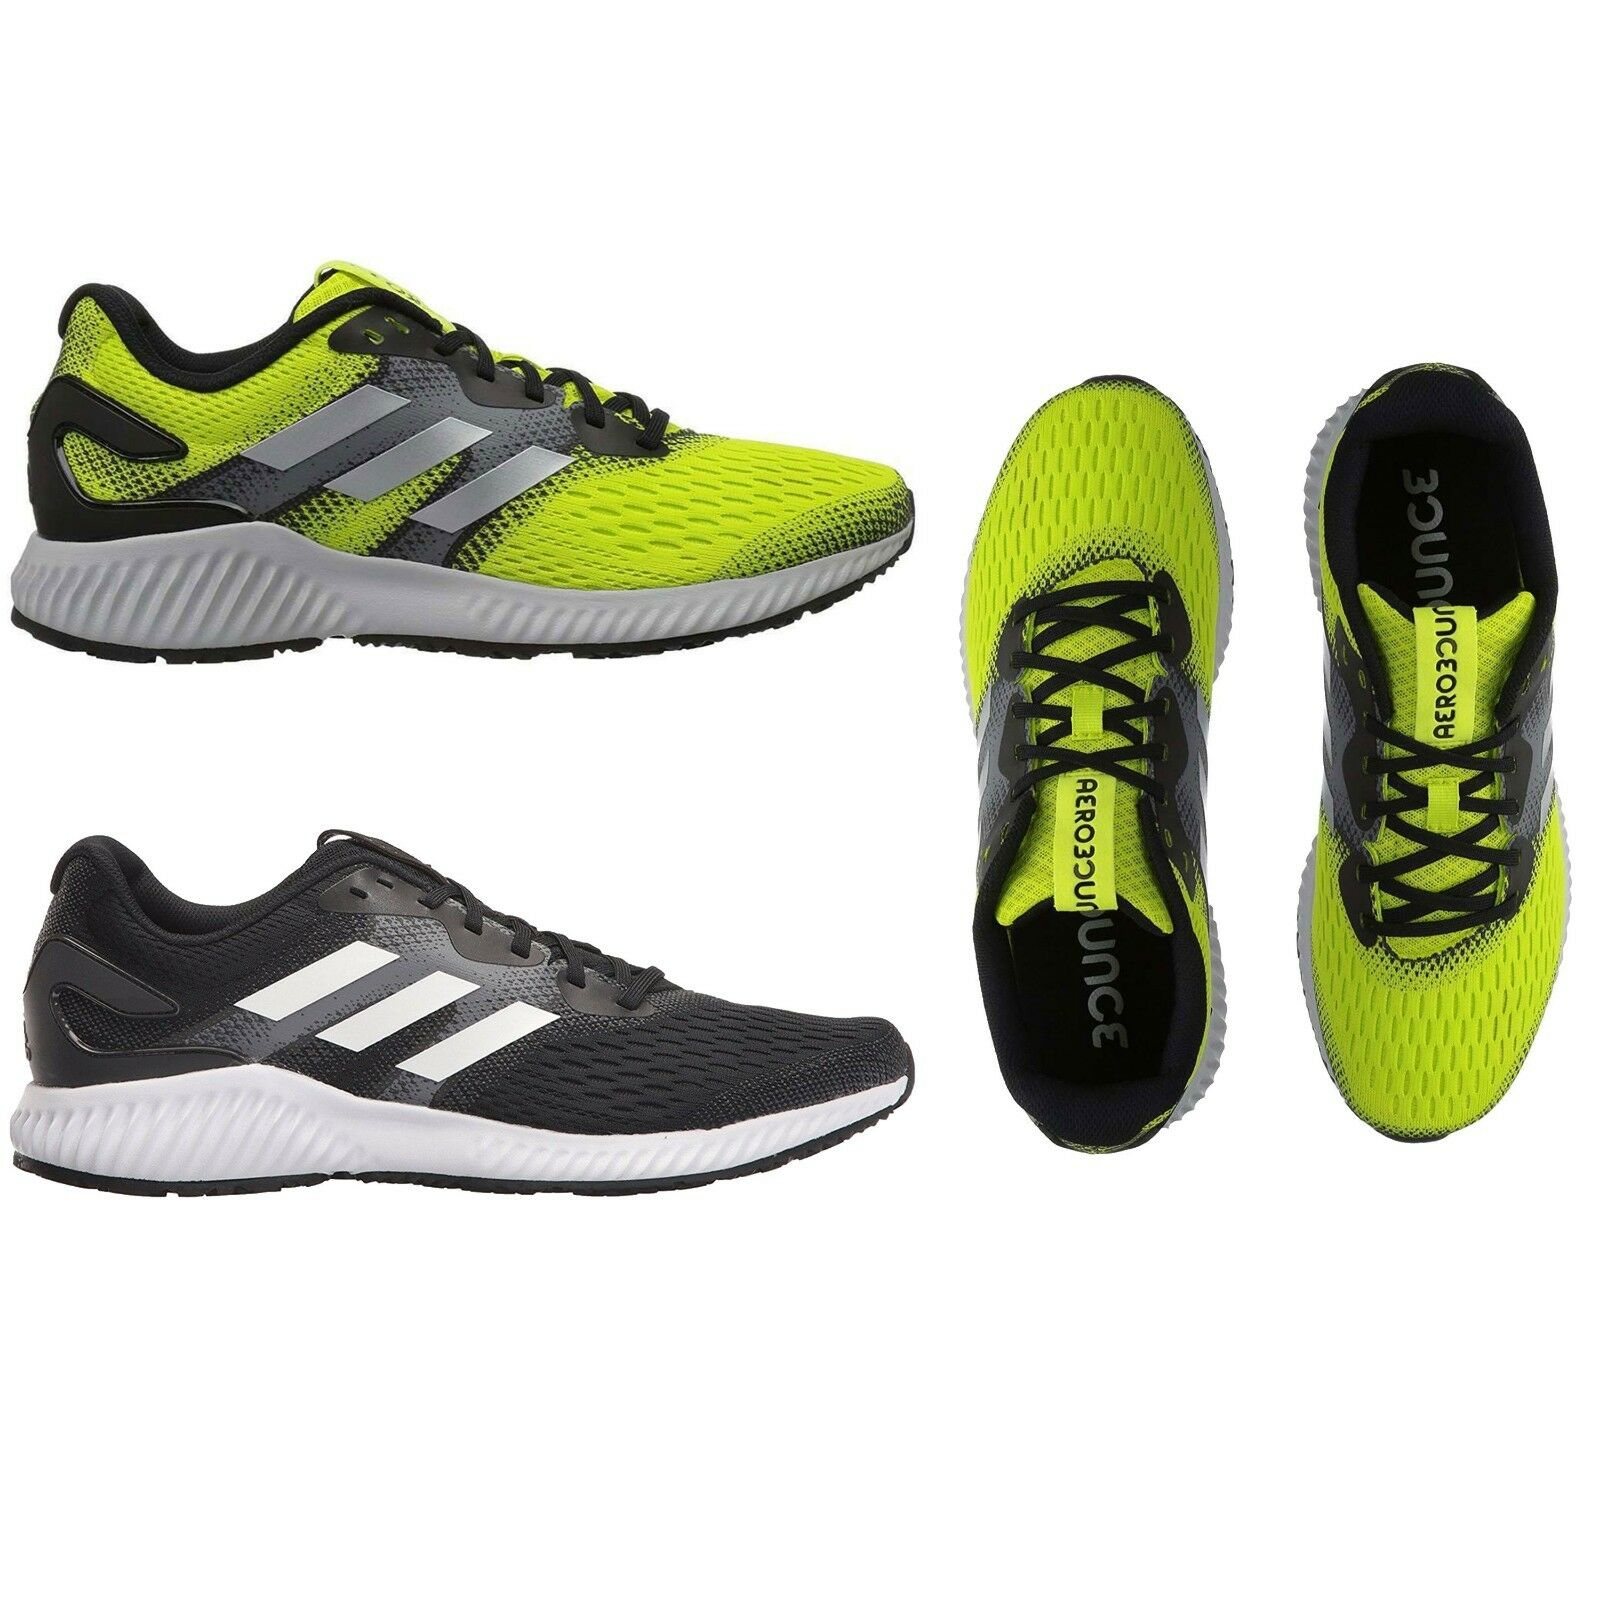 Adidas hommes Athletic AeroBounce M Running Chaussures Sneakers NEW Core noir /blanc